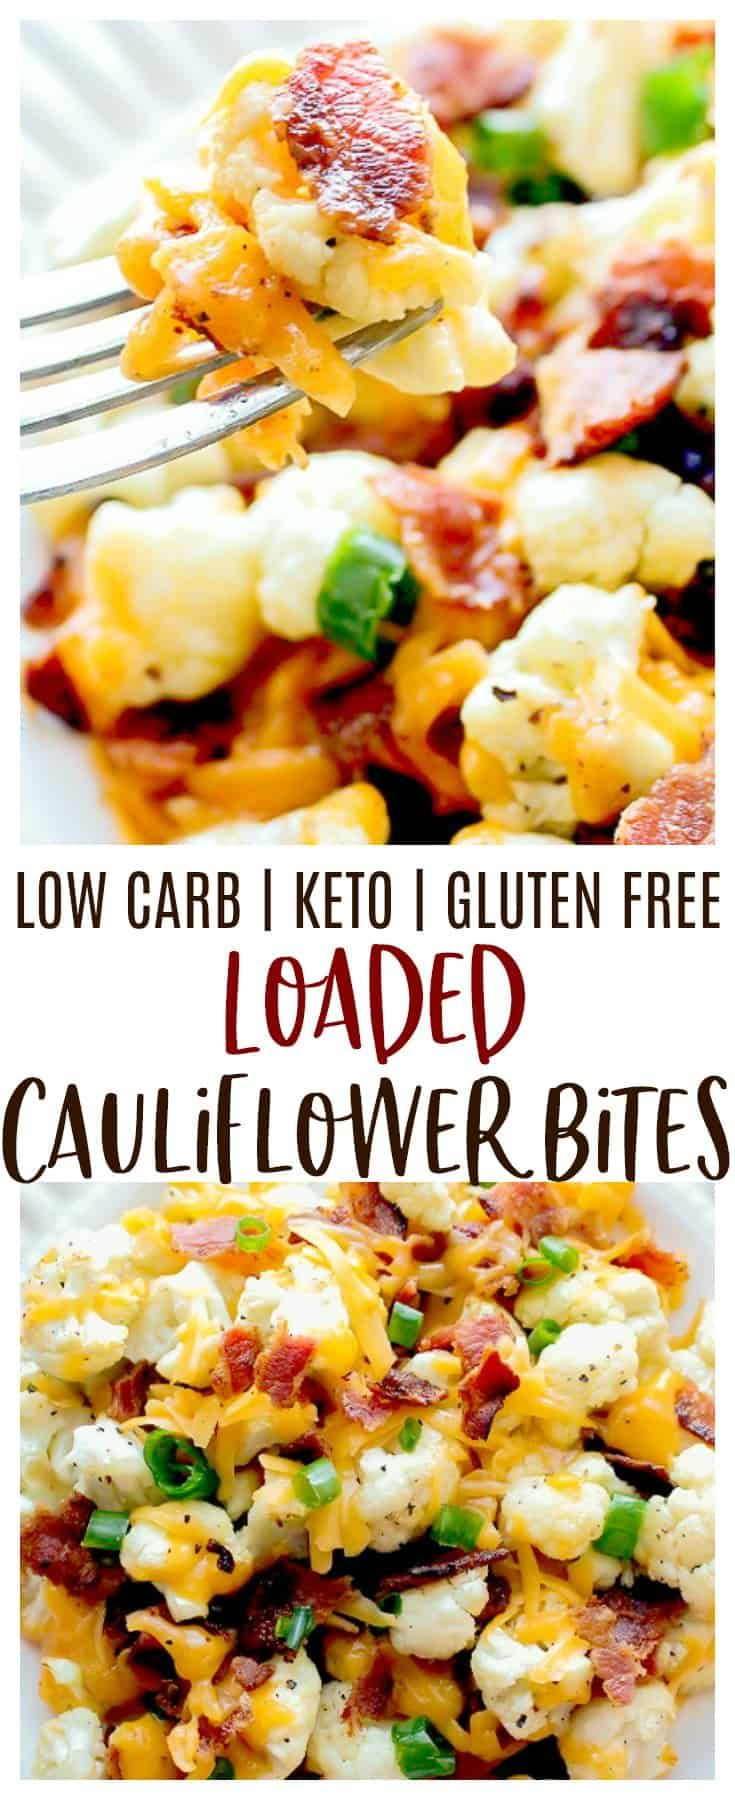 Loaded Cauliflower Bites - a low carb alternative to potato skins! Bite-size pieces of cauliflower are covered in cheddar cheese and bacon. This easy-to-make recipe is low carb and perfect for those following a keto diet. Serve it as an appetizer, snack, or side dish. | #cauliflower #lowcarb #keto #glutenfree #dlbrecipes